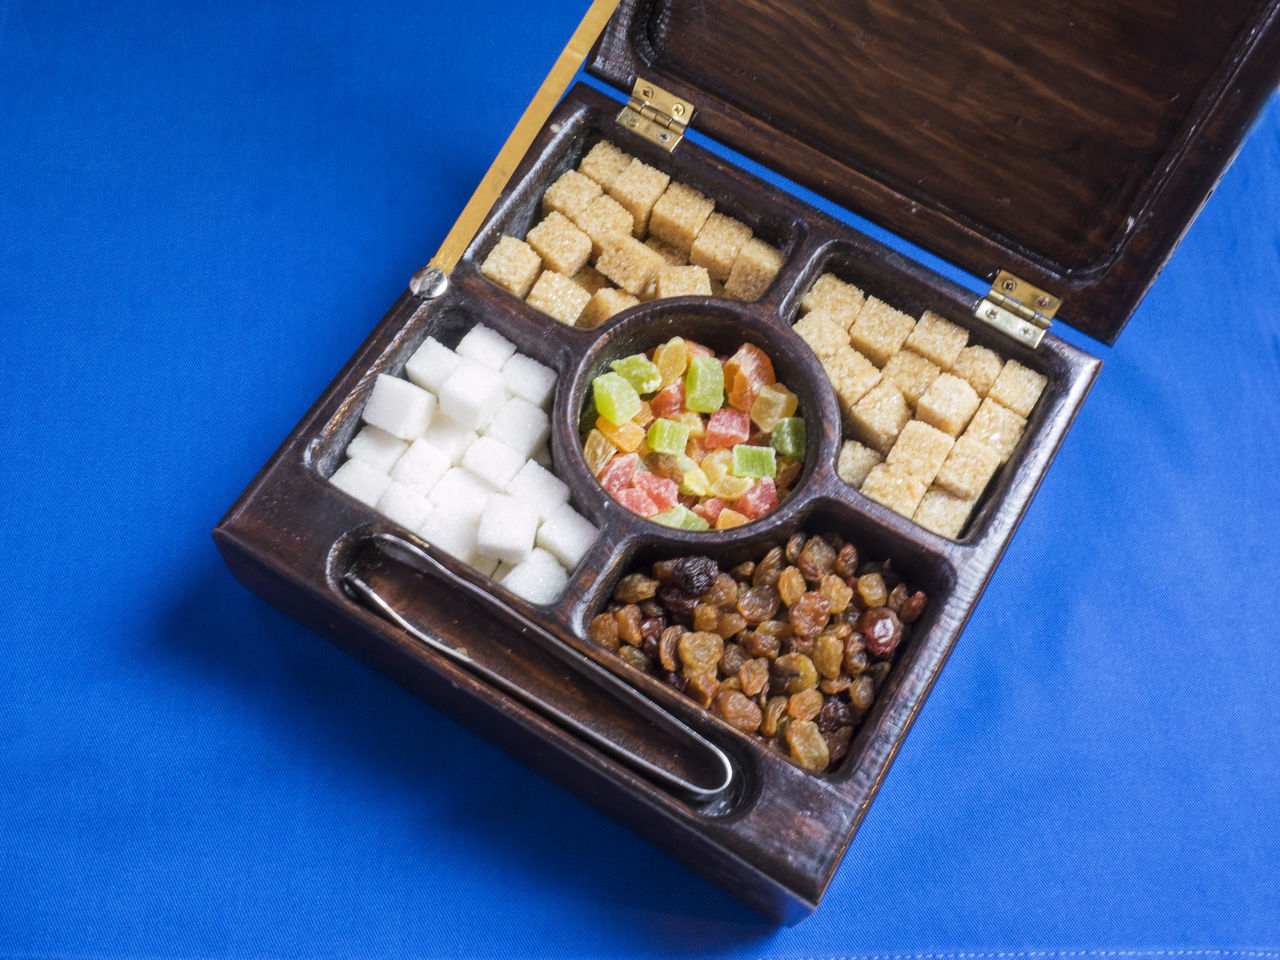 tea box with various kinds of sugar, candied fruits and raisins Blue Box Candied Close-up Day Food Food And Drink Freshness Fruits Healthy Eating High Angle View Indoors  Kinds No People Raisins Ready-to-eat Sugar Tea Various Wood Wooden